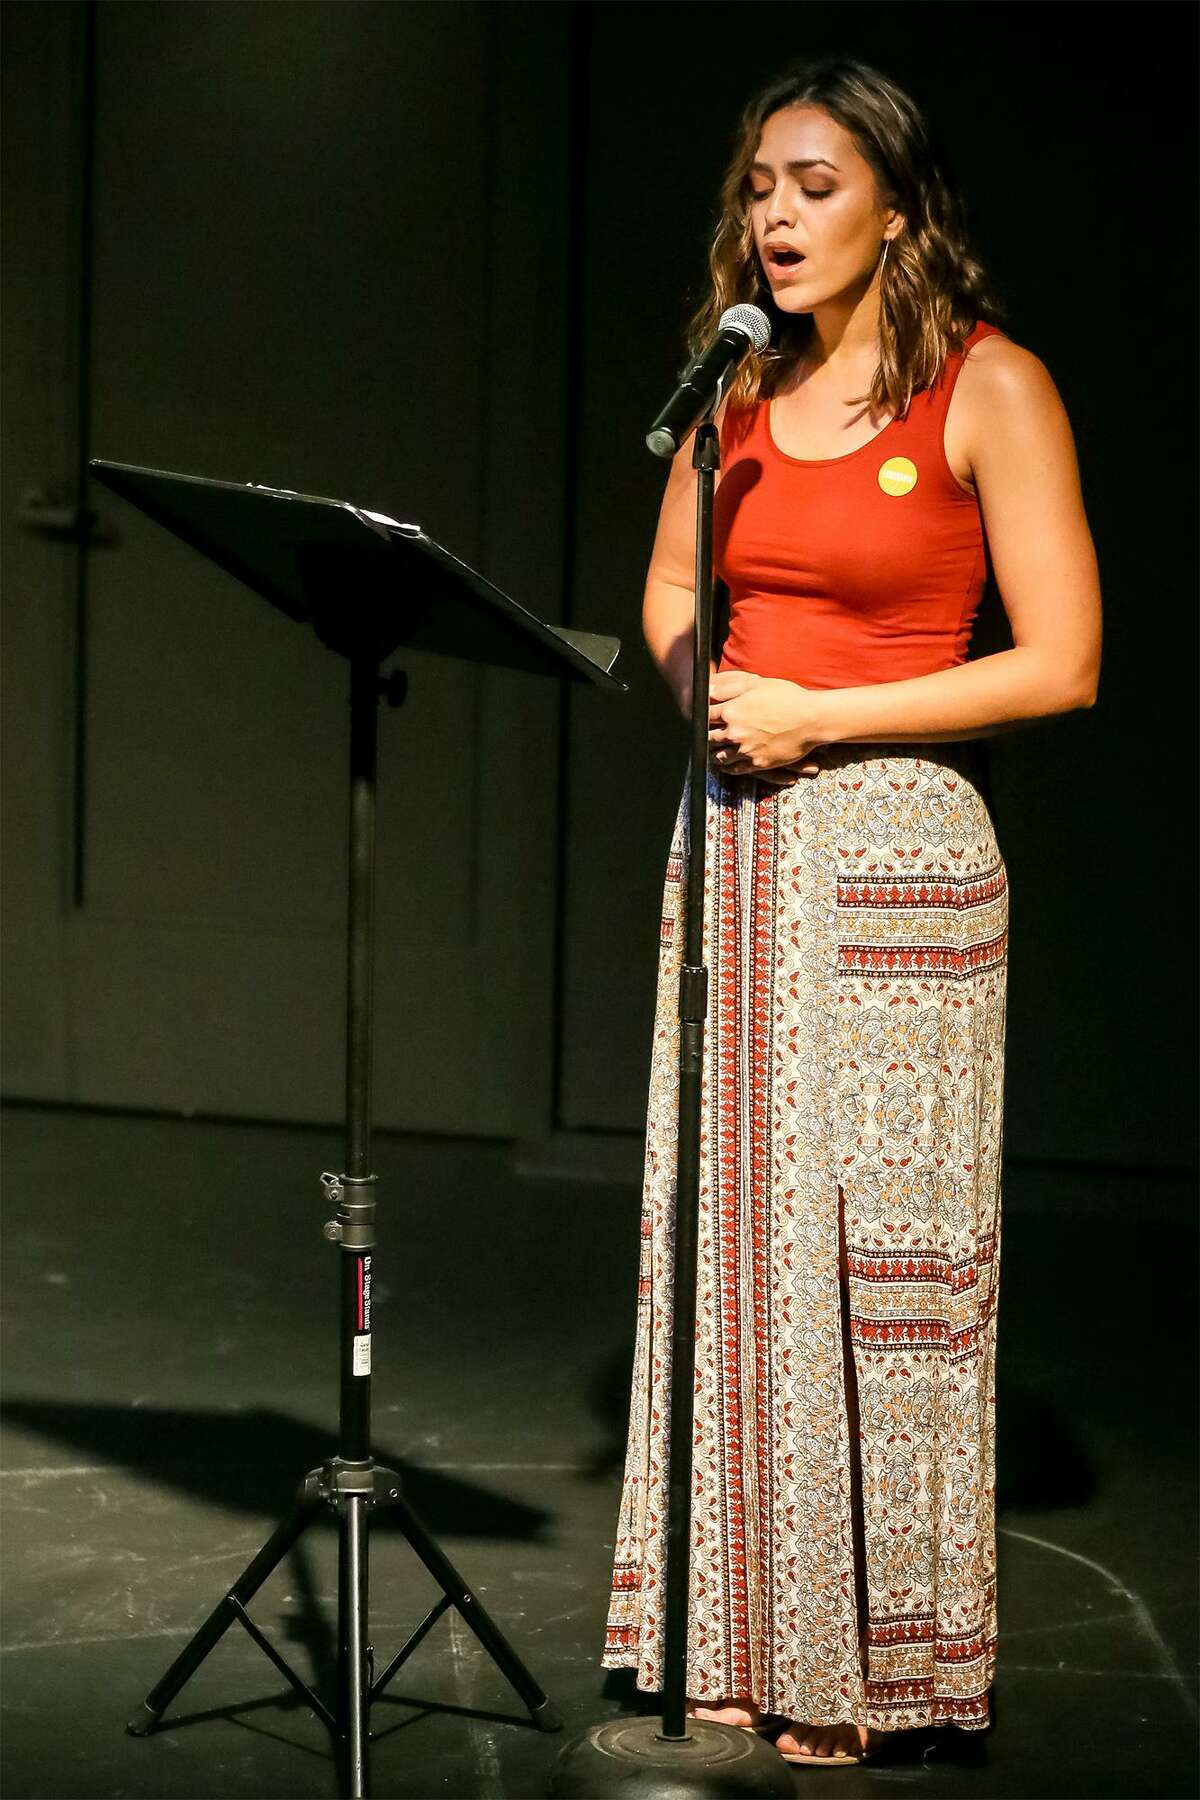 """Celeste Ramirez sings """"Lone Star,"""" a song written by music director and composer Nathan Felix, for the press conference for Luminaria in April."""